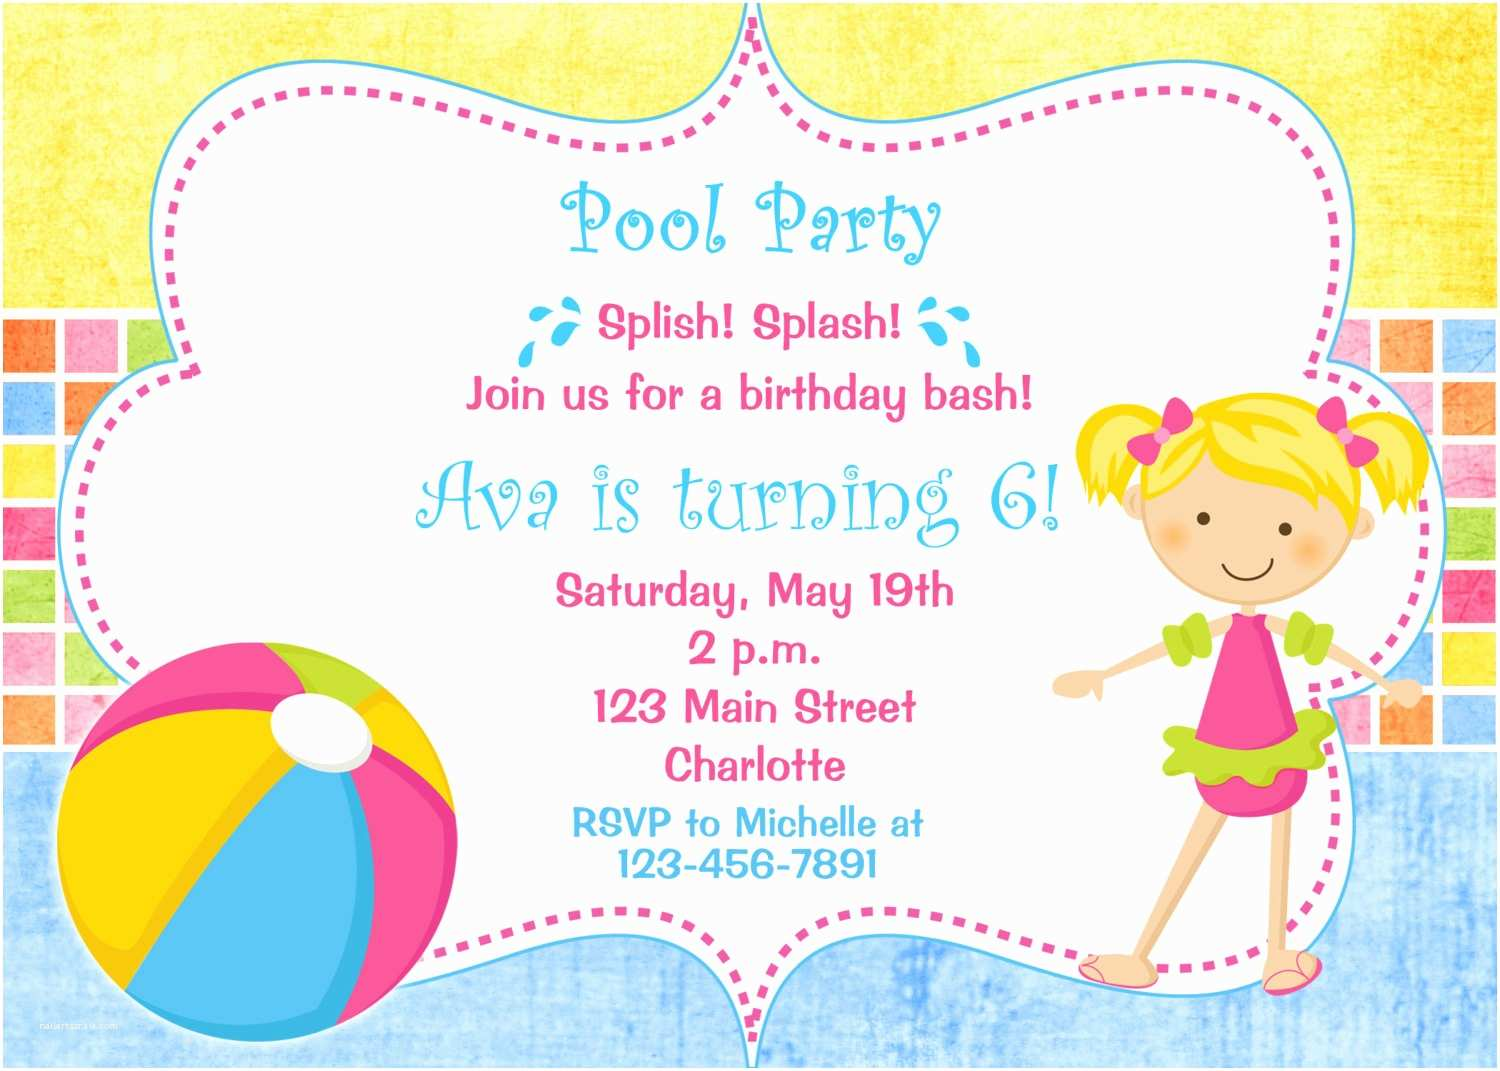 Swimming Party Invitations Pool Party Birthday Invitation Pool Party Pool toys